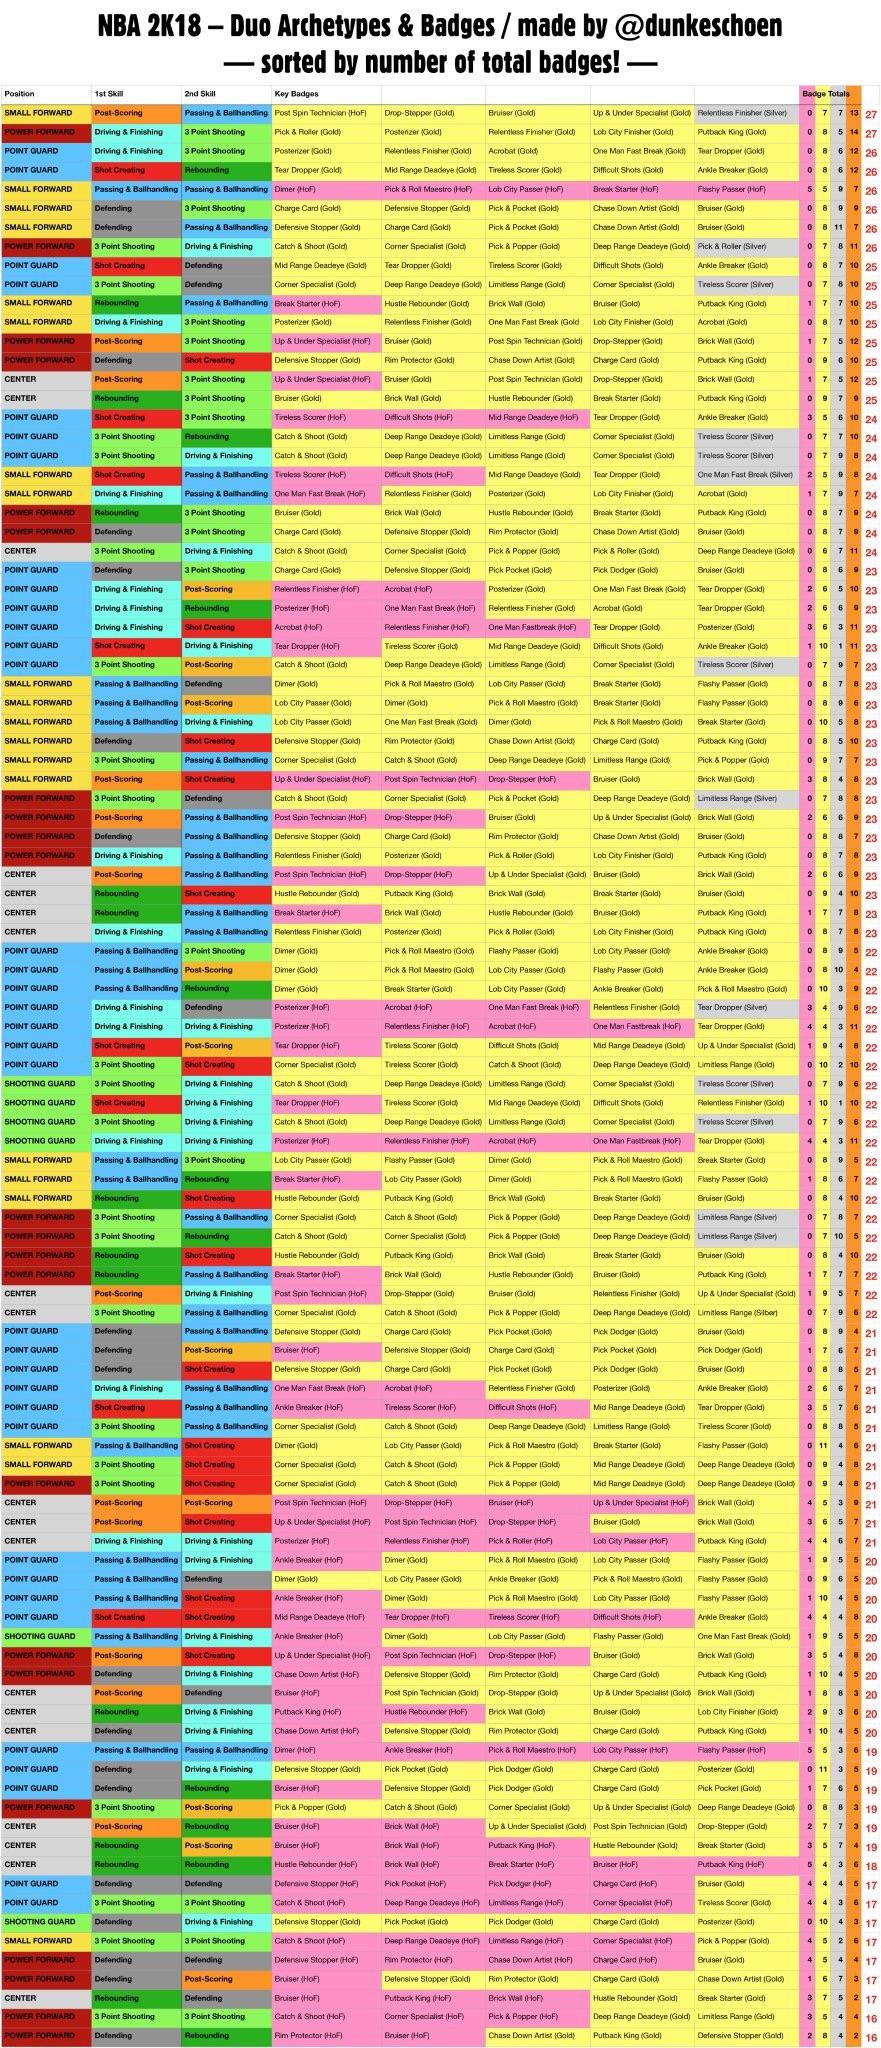 Nba 2K18 Badges Spreadsheet Throughout Updated Nba2K18 Archetype List Via @dunkeshoen : Nba2K